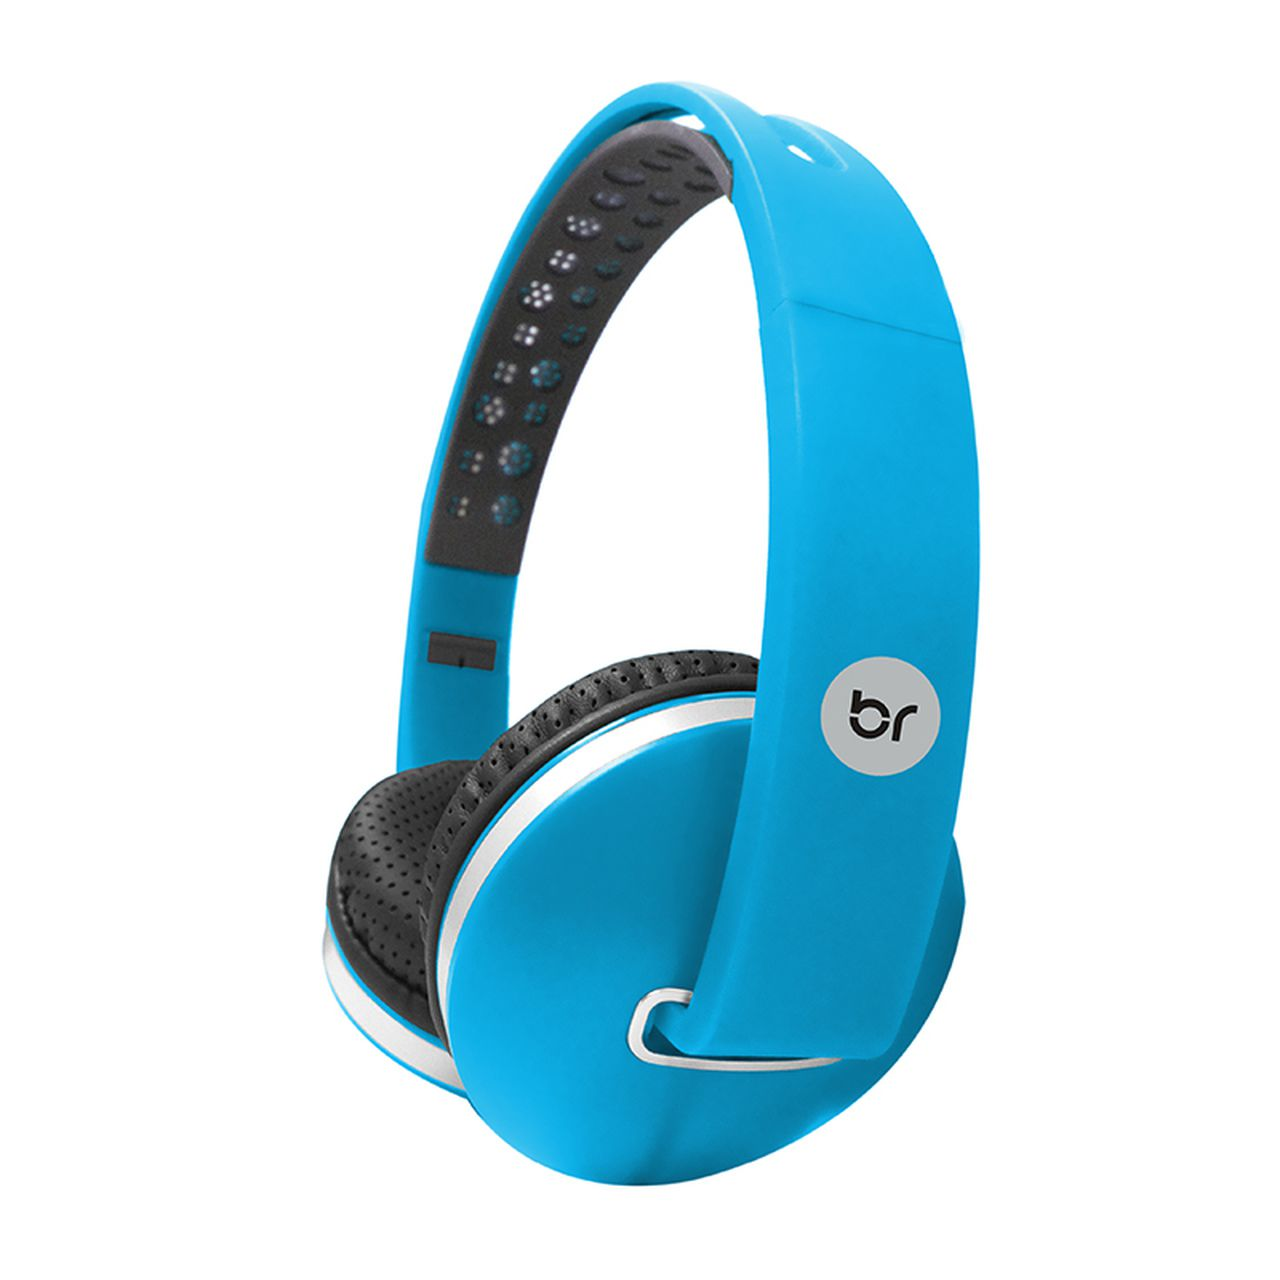 Fone de Ouvido Headphone Colors Azul 470 - Bright